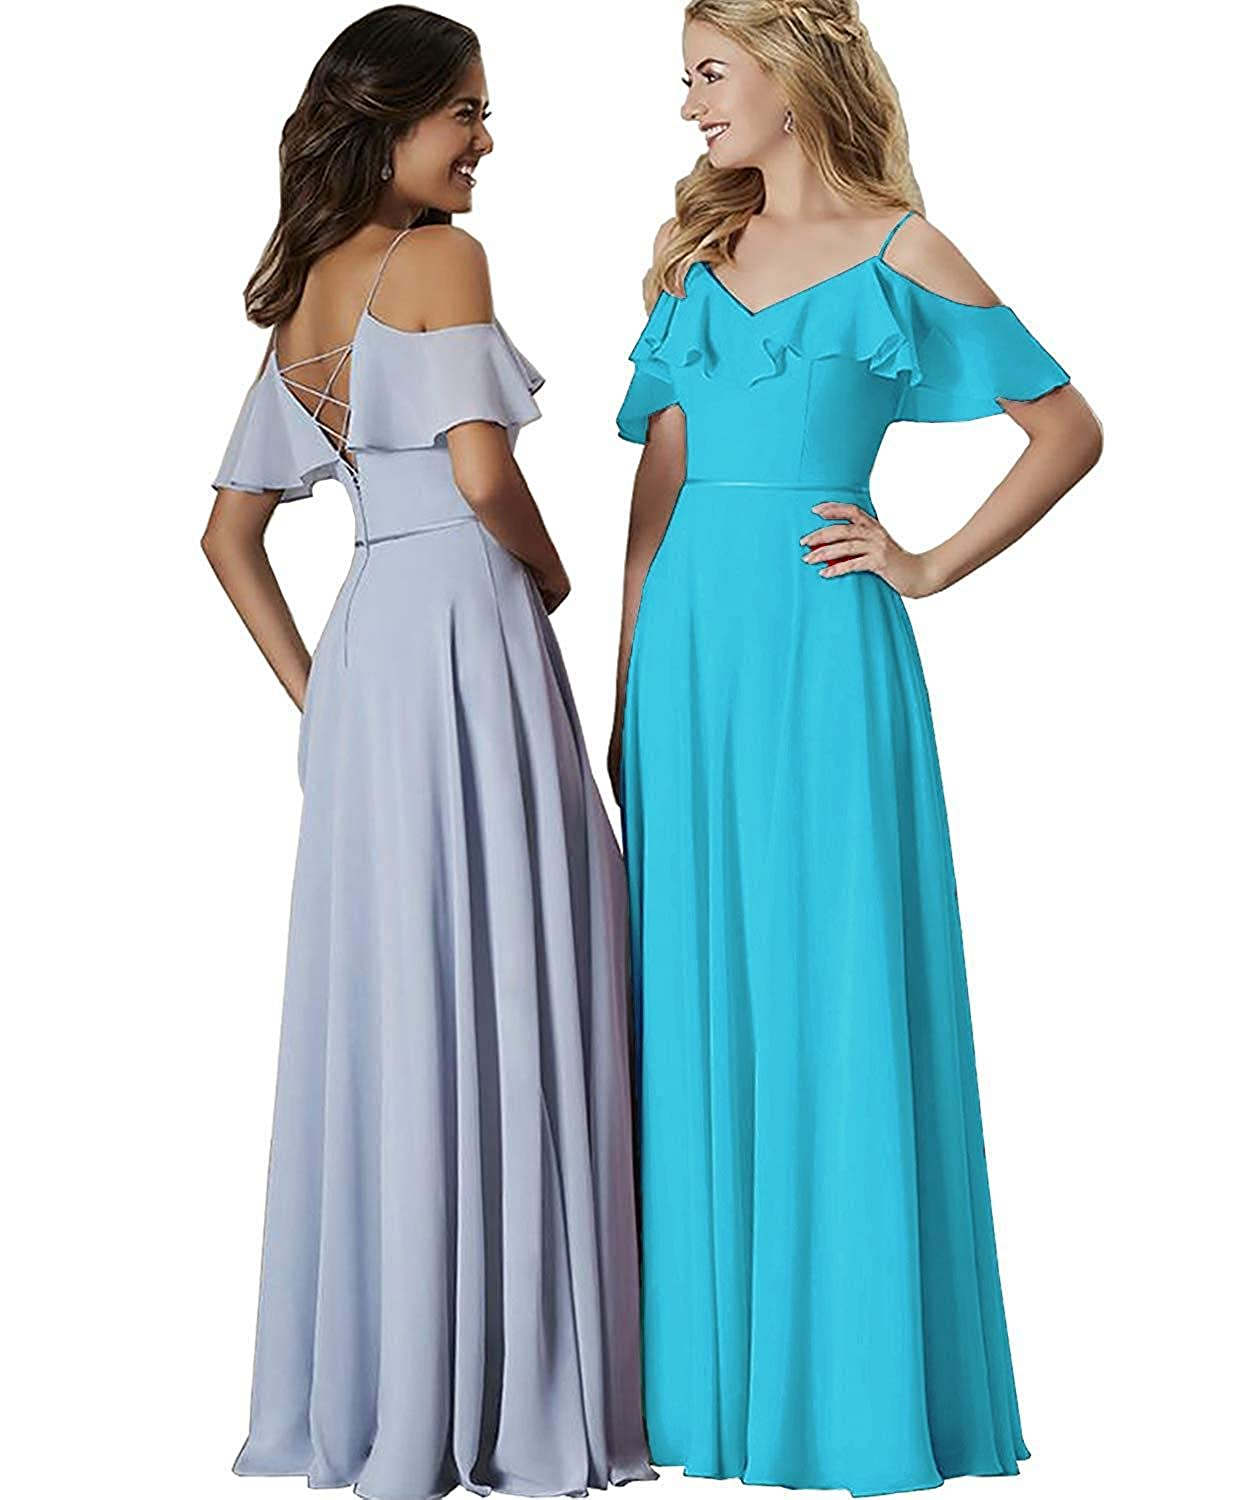 6052b4f8f1 Dusty Blue Bridesmaid Dresses With Sleeves - Gomes Weine AG